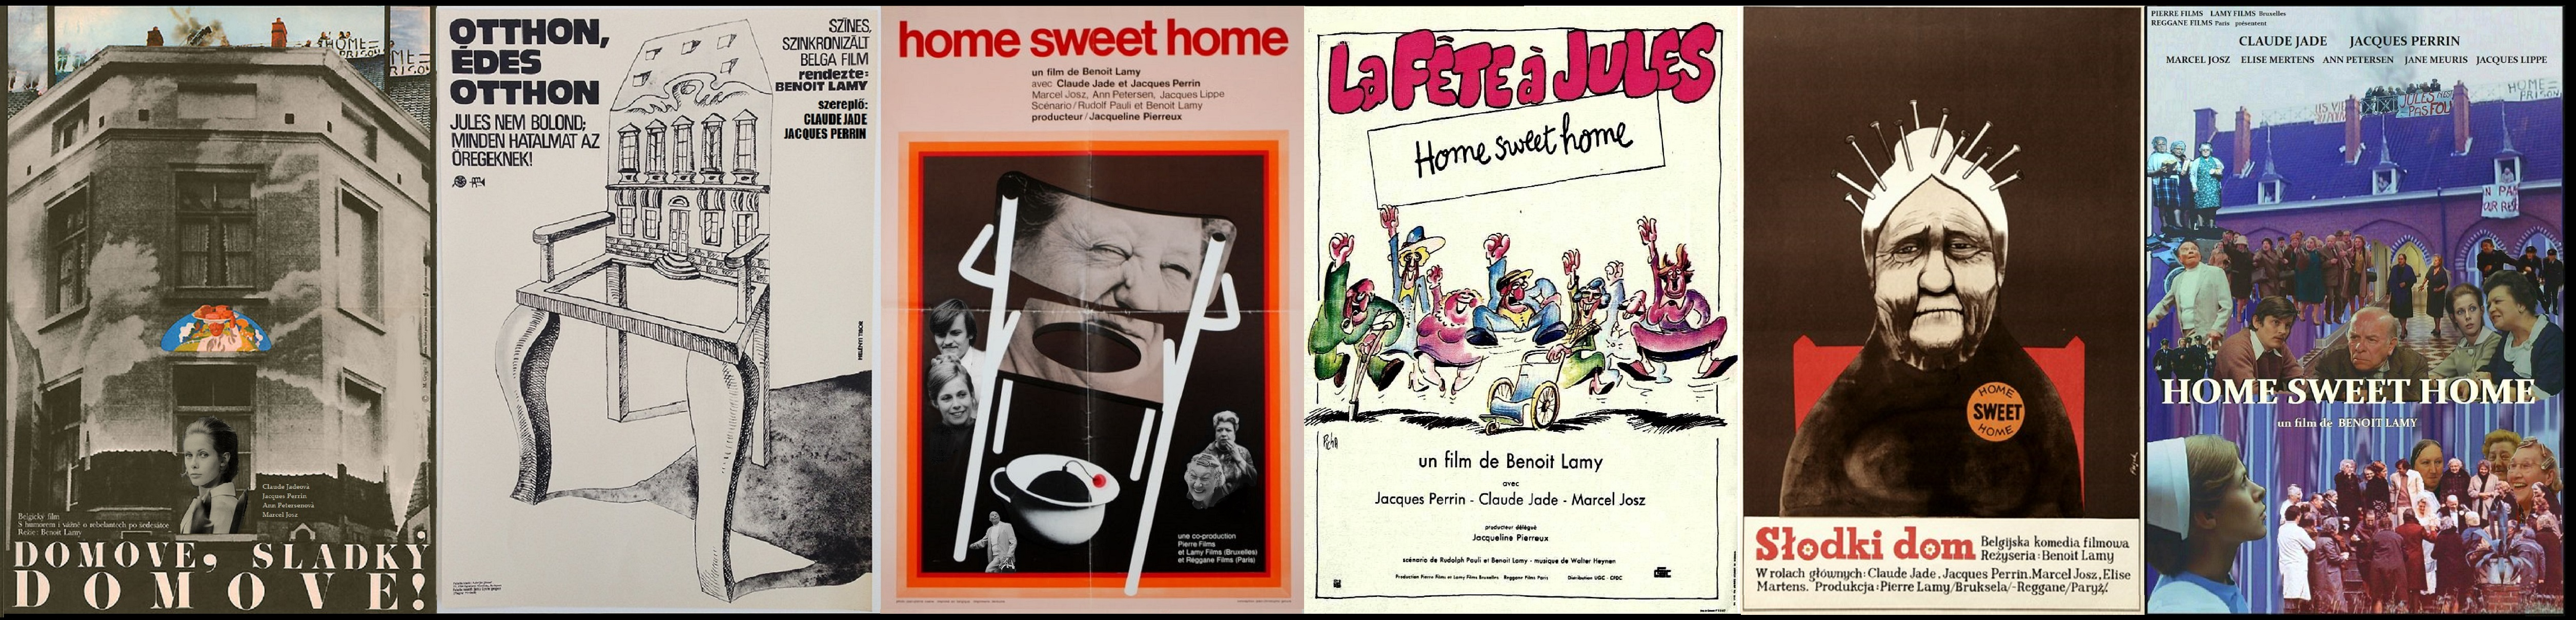 affiches_Home_sweet_home